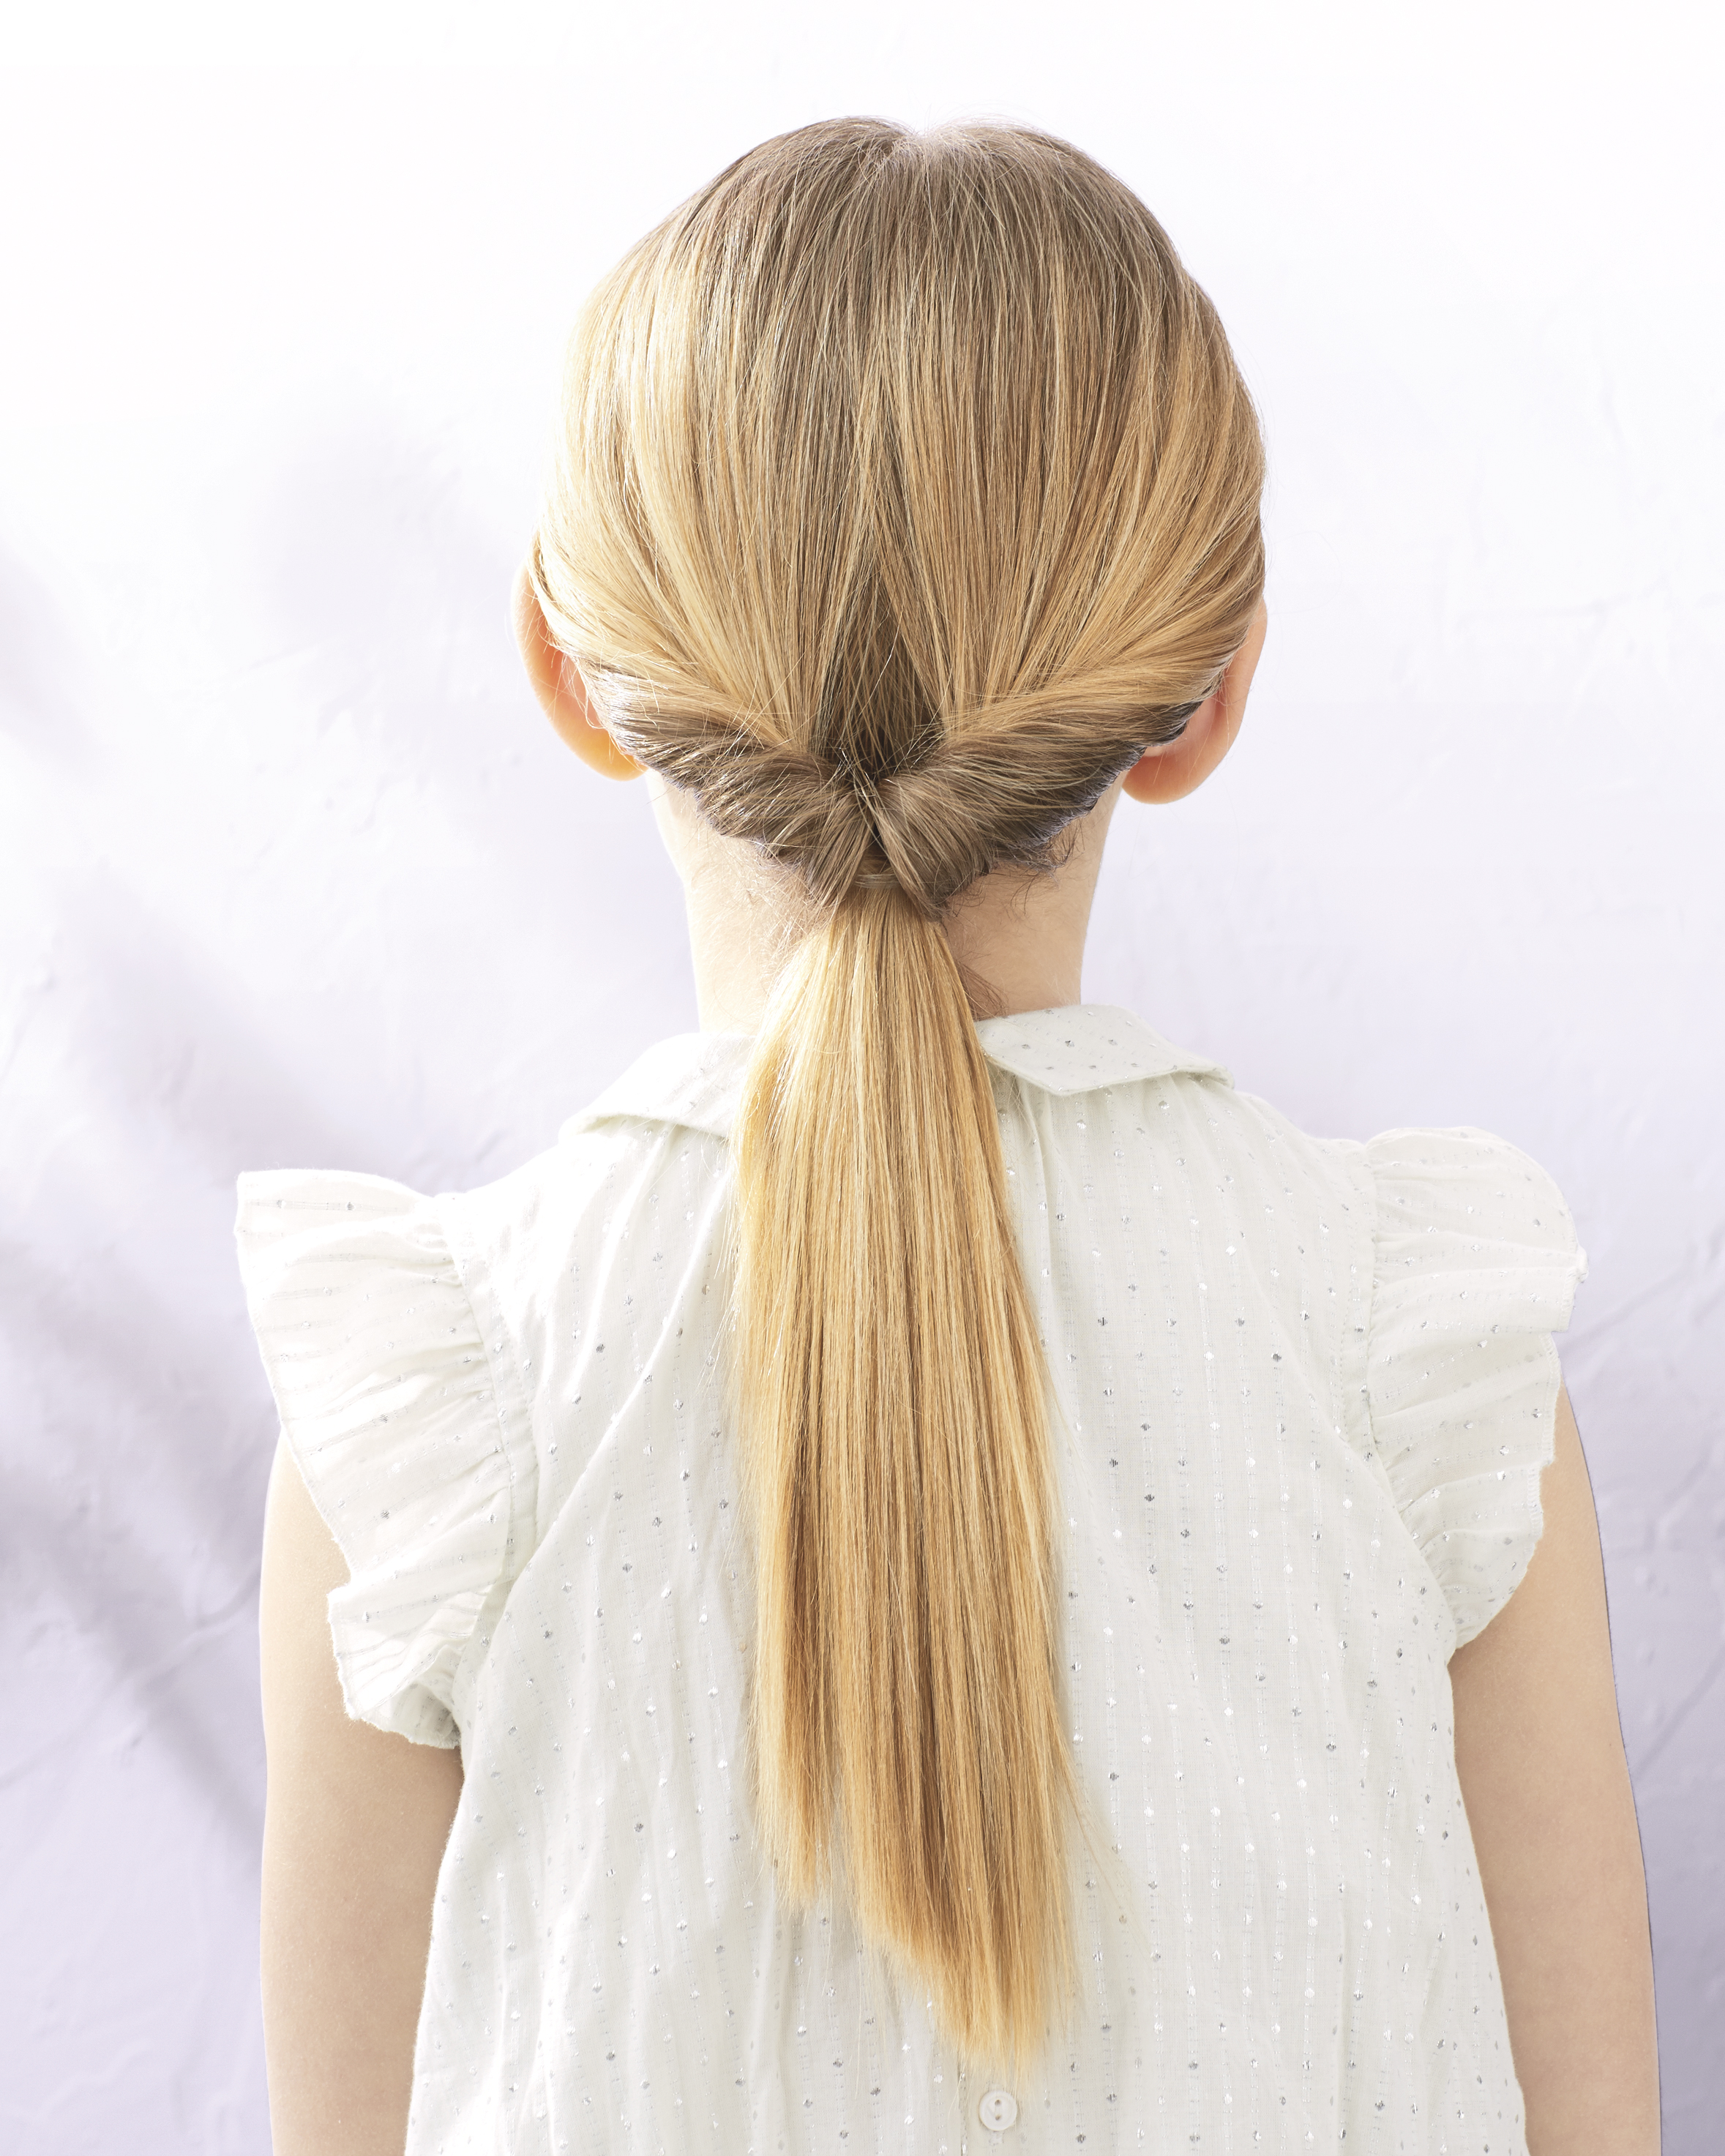 Flower Girl Wedding Hairstyles: Flower Girl Hairstyles That Are Cute And Comfy